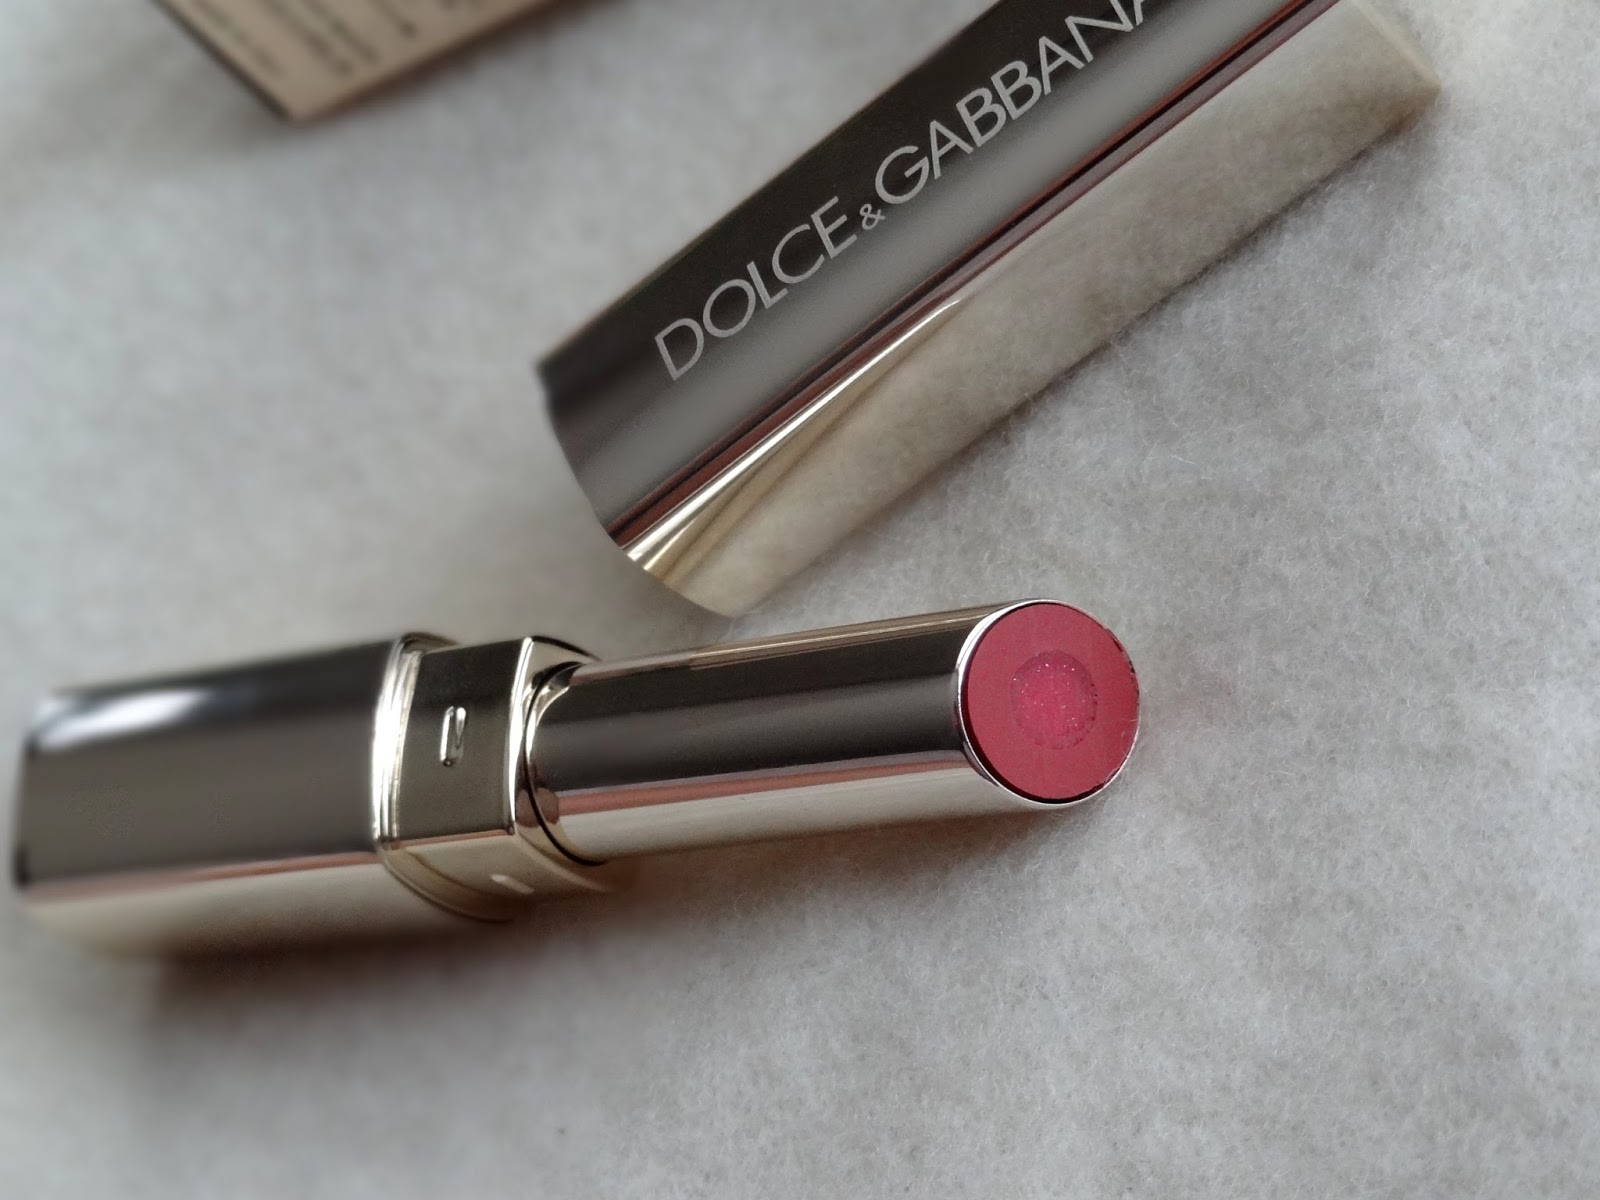 dolce & gabbana passion fusion gloss duo lipstick in 230 iridescent review, photos & swatches